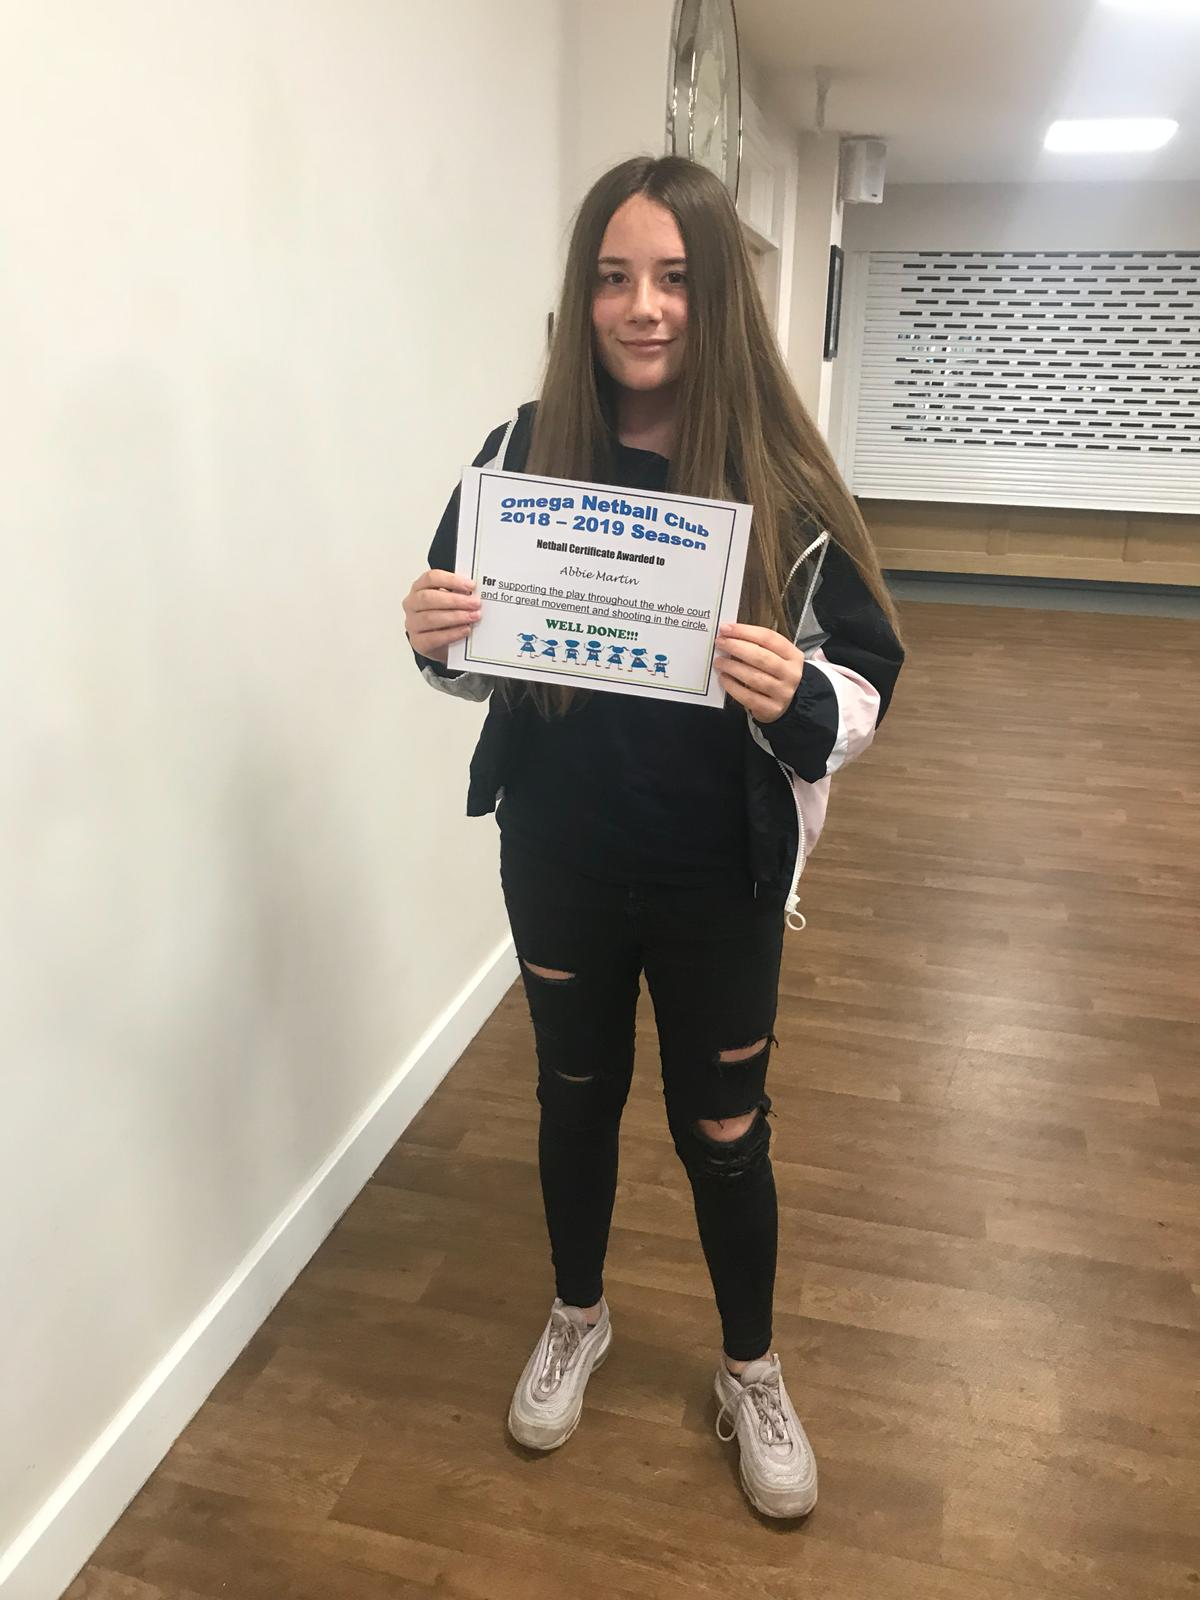 Certificate of achievement for Abbie Martin